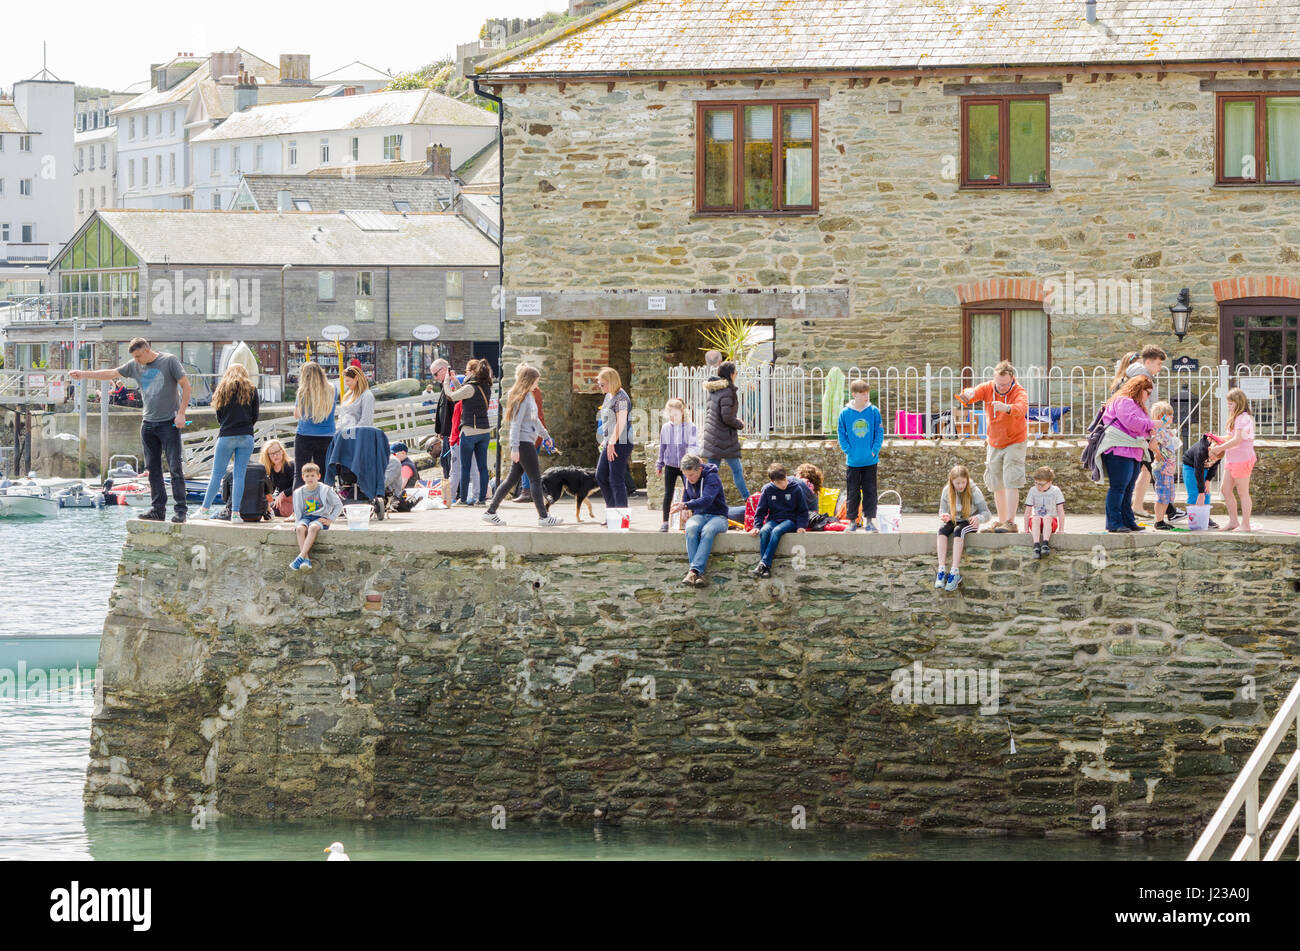 Children and adults crabbing on Victoria Quay in Salcombe, Devon - Stock Image